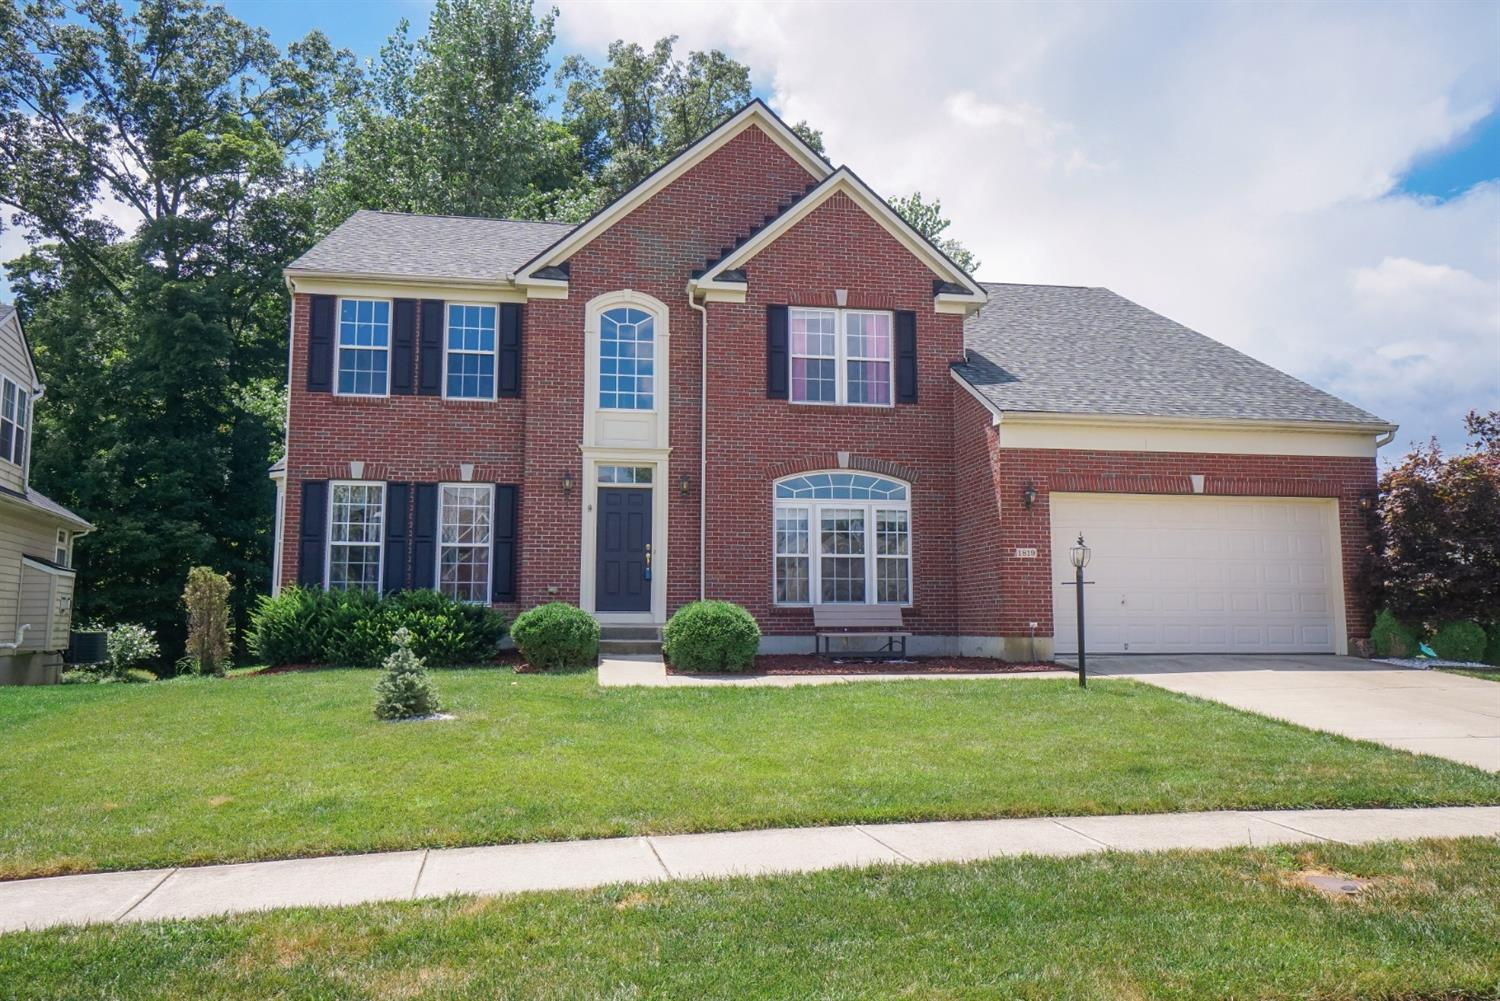 Property for sale at 1819 Amberwood Way, Hamilton Twp,  Ohio 45039